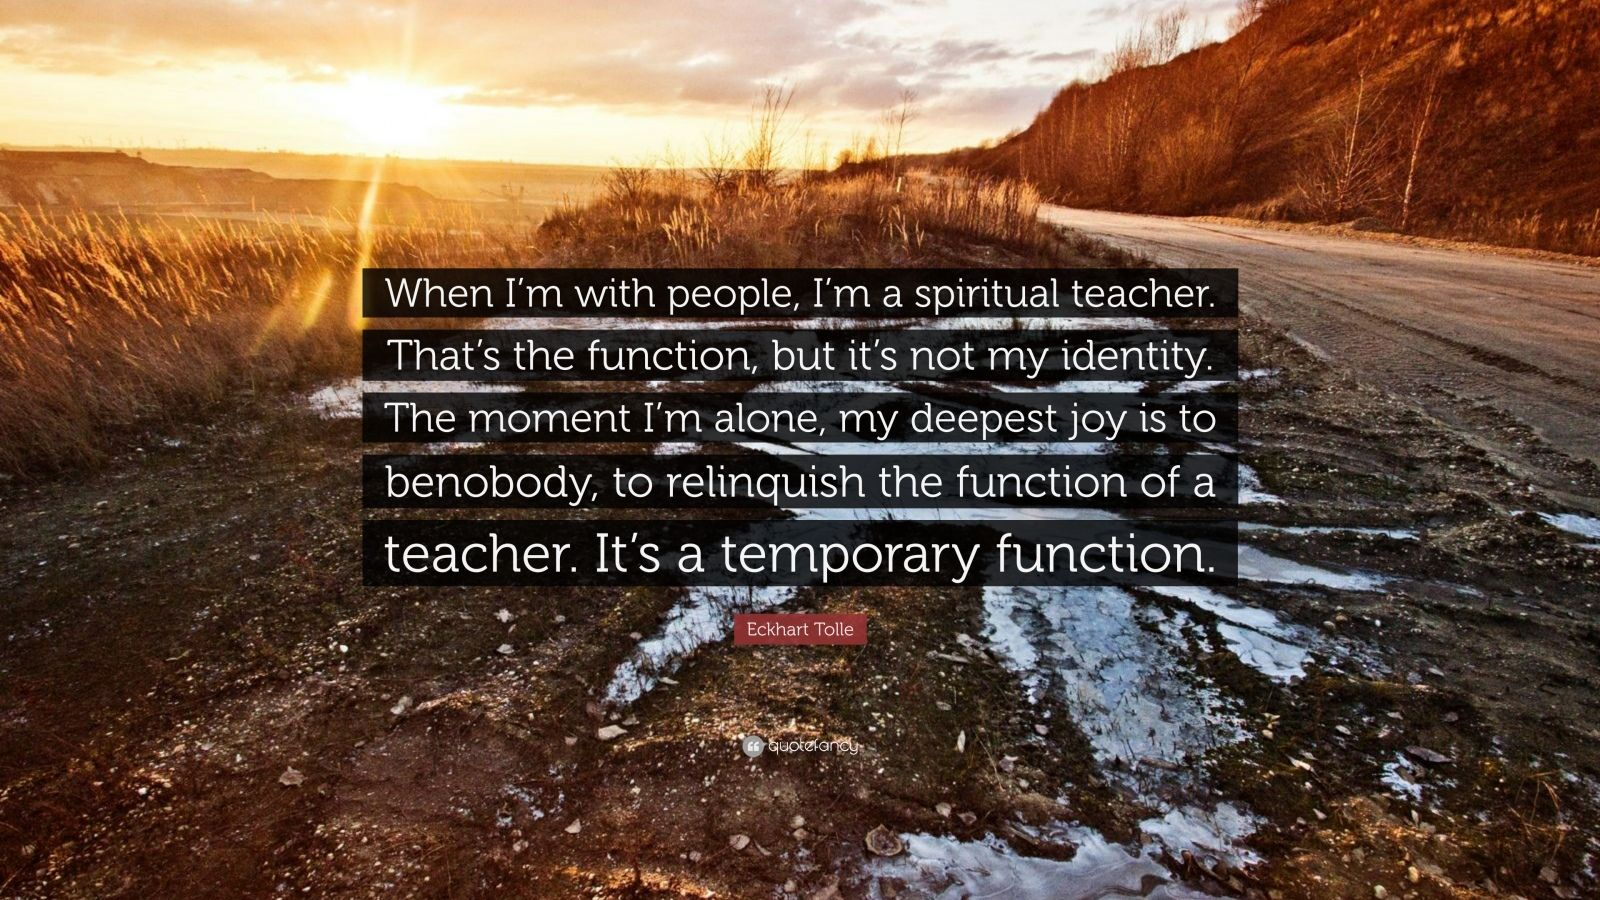 """Eckhart Tolle Quote: """"When I'm with people, I'm a spiritual teacher. That's the function, but it's not my identity. The moment I'm alone, my deepest joy is to benobody, to relinquish the function of a teacher. It's a temporary function."""""""